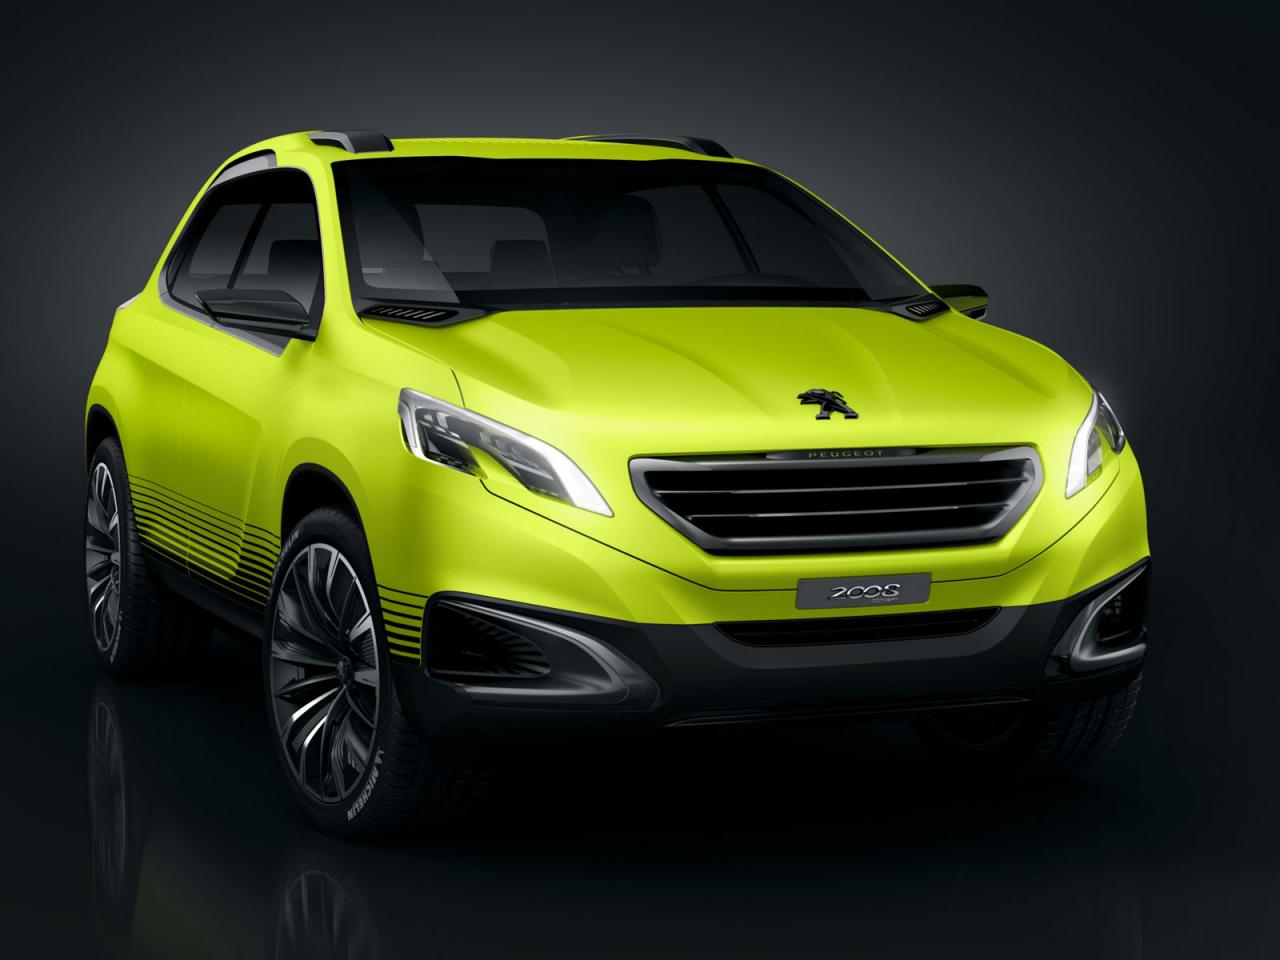 2013 Peugeot 2008 Concept 1 2013 Peugeot 2008 Concept gets leaked before it gets showcased